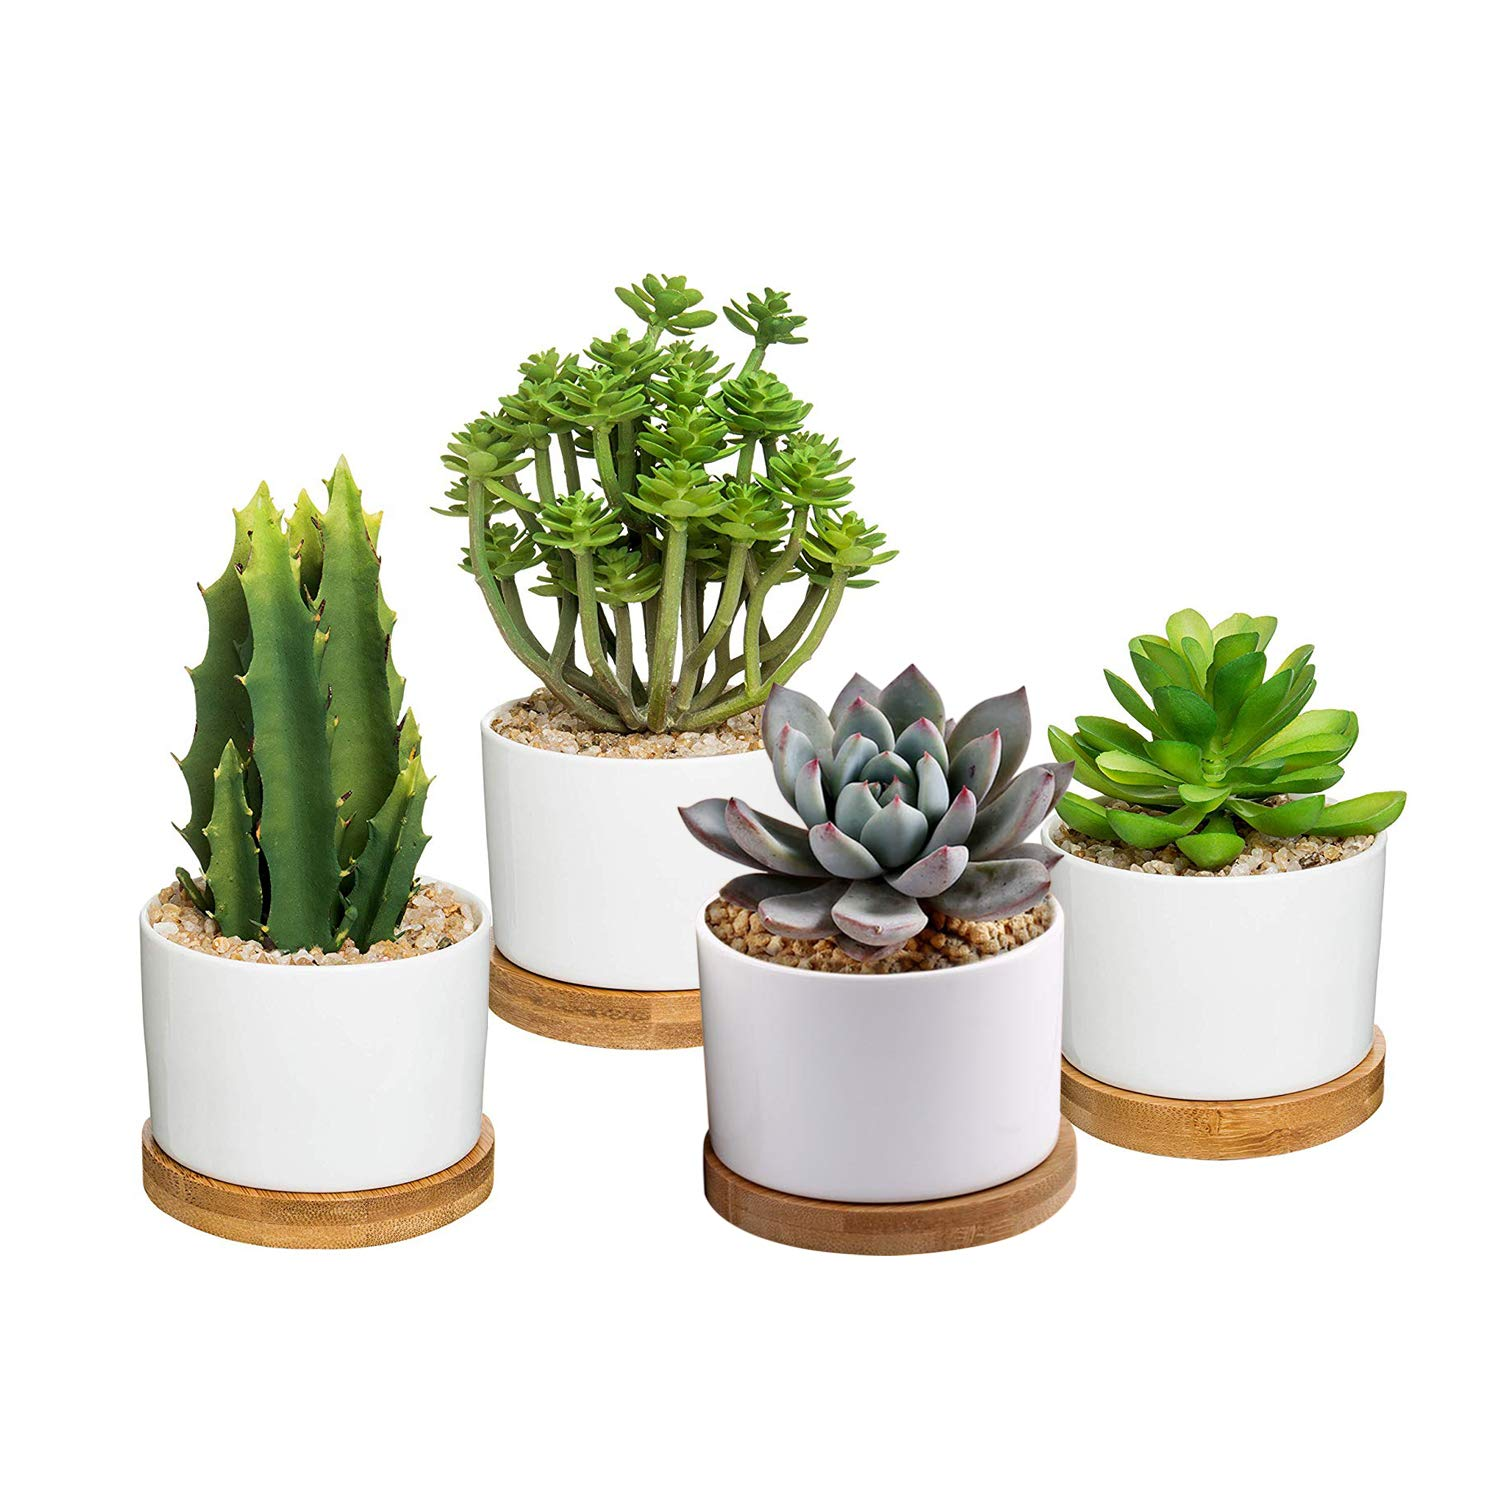 UFIG Succulent Planter White Ceramic Cylinder Cactus Flower Pots with Removable Tray, Pack of 4